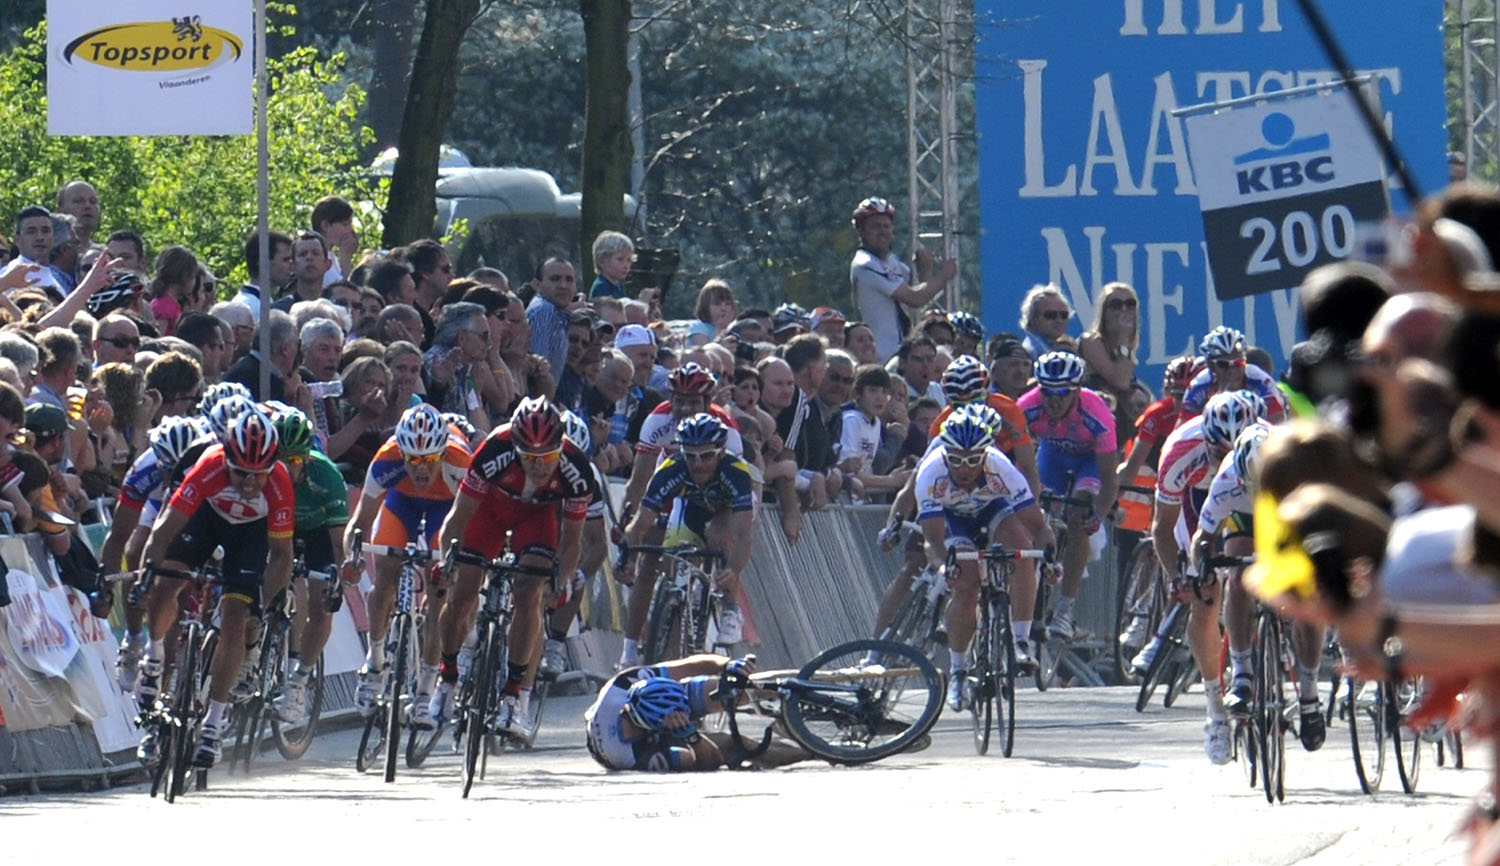 scheldeprijs, 2011, mark cavendish, htc, farrar, crash